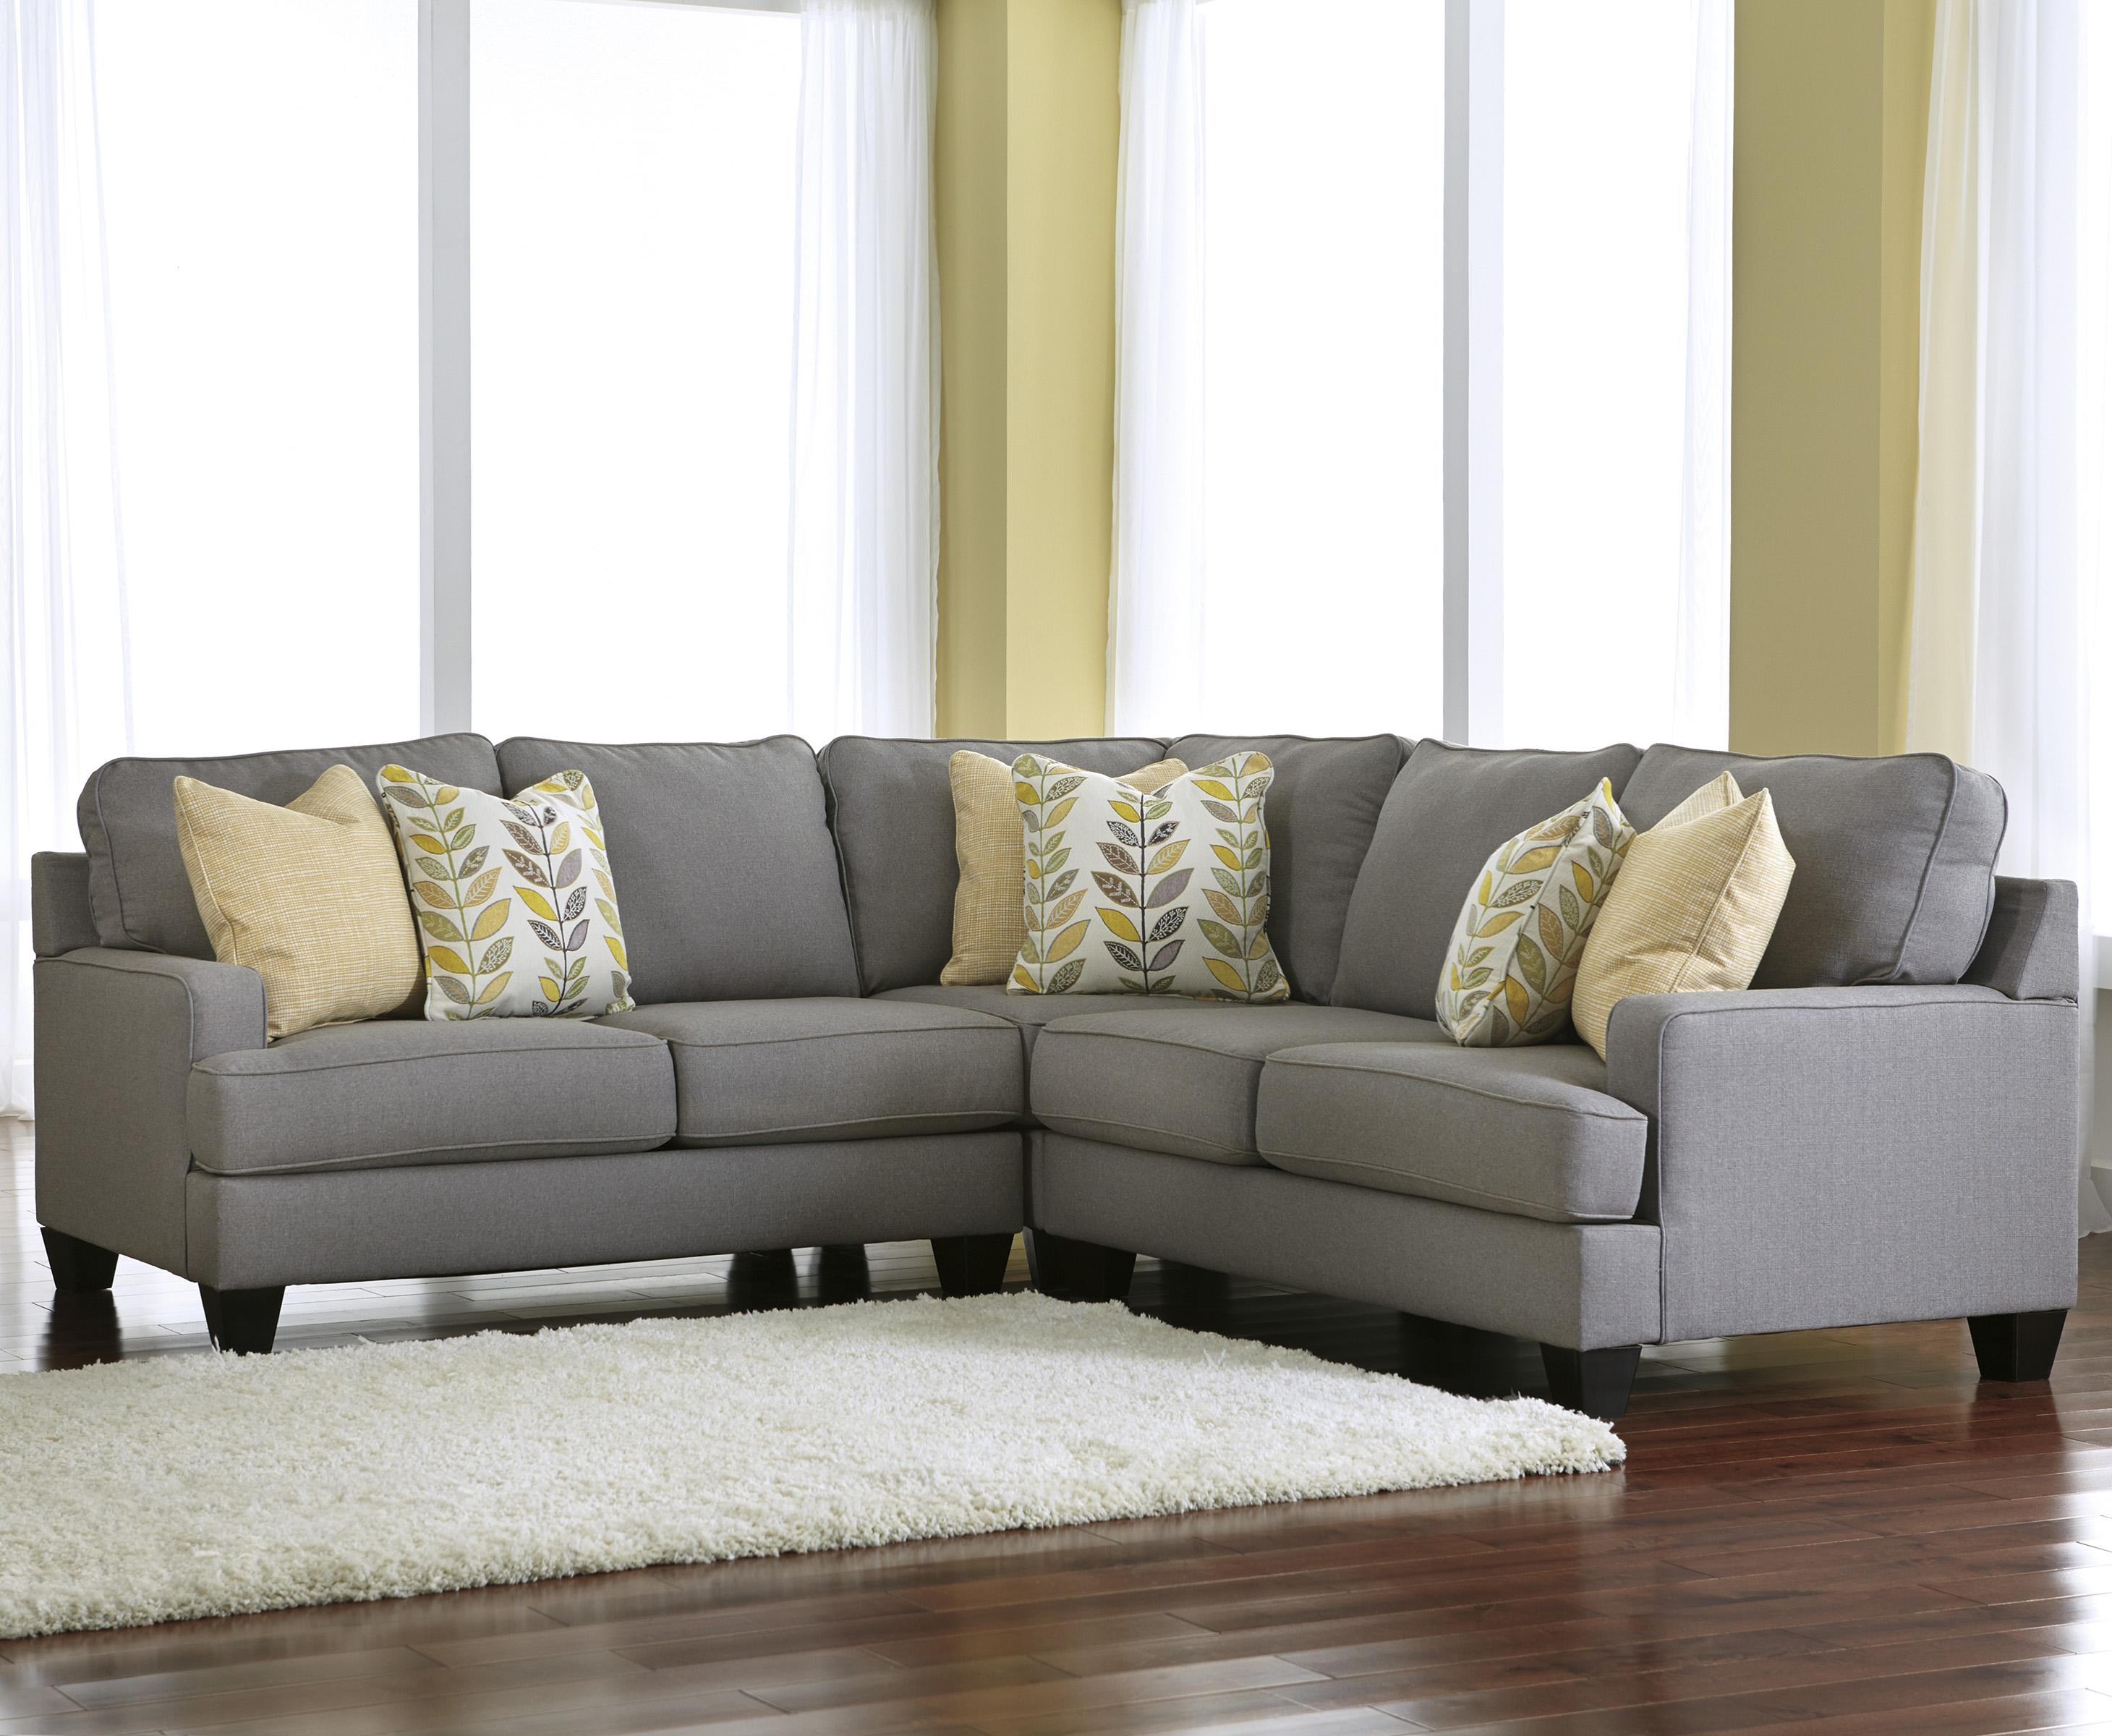 Signature design by ashley chamberly alloy modern 3 for 77 sectional sofa